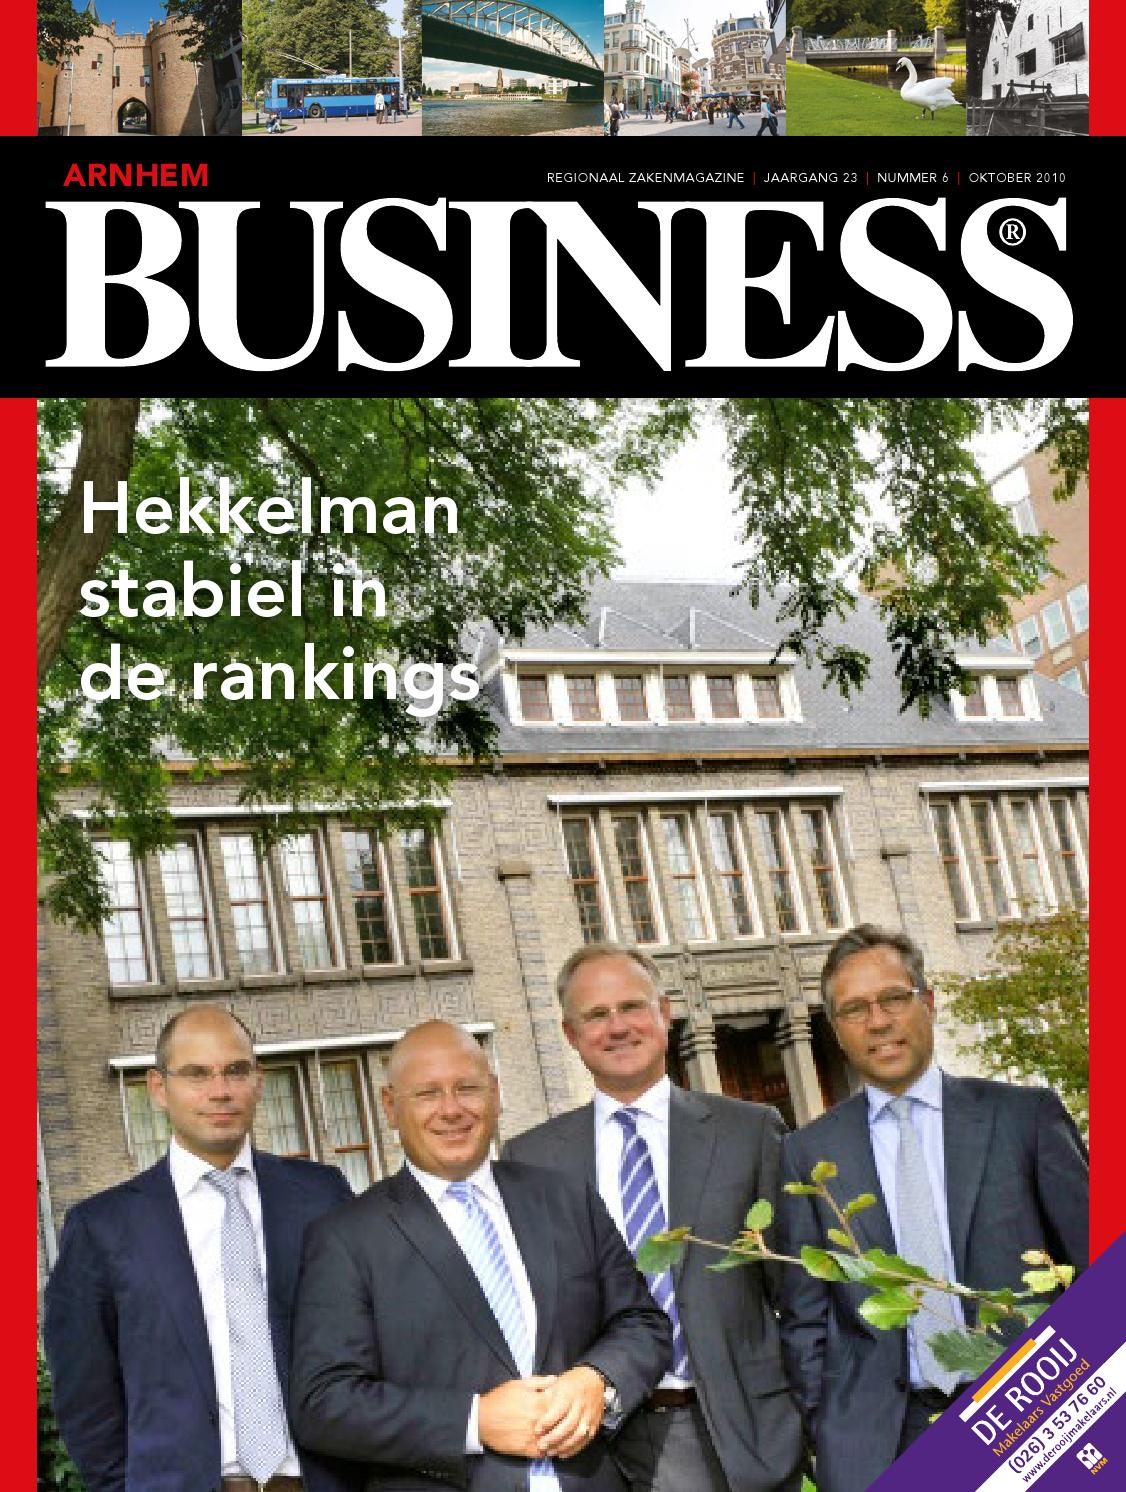 2010   arnhem business 6   oktober by arnhem business   issuu